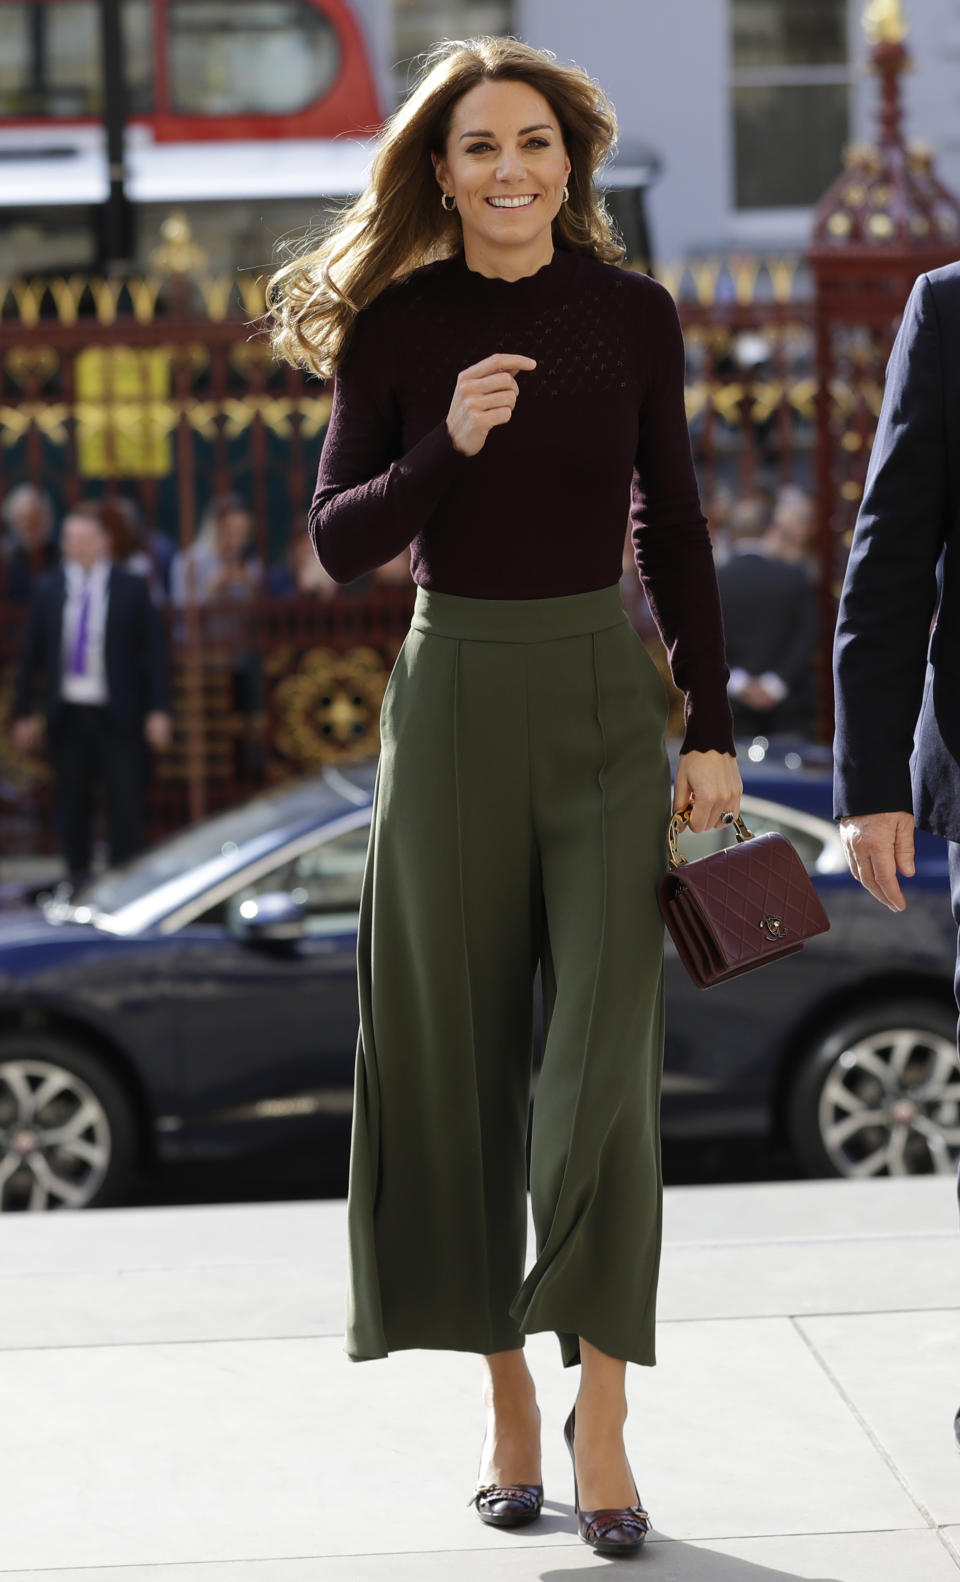 The Duchess of Cambridge arrived at The Natural History Museum wearing Jigsaw trousers and a Warehouse jumper. [Photo: Getty]